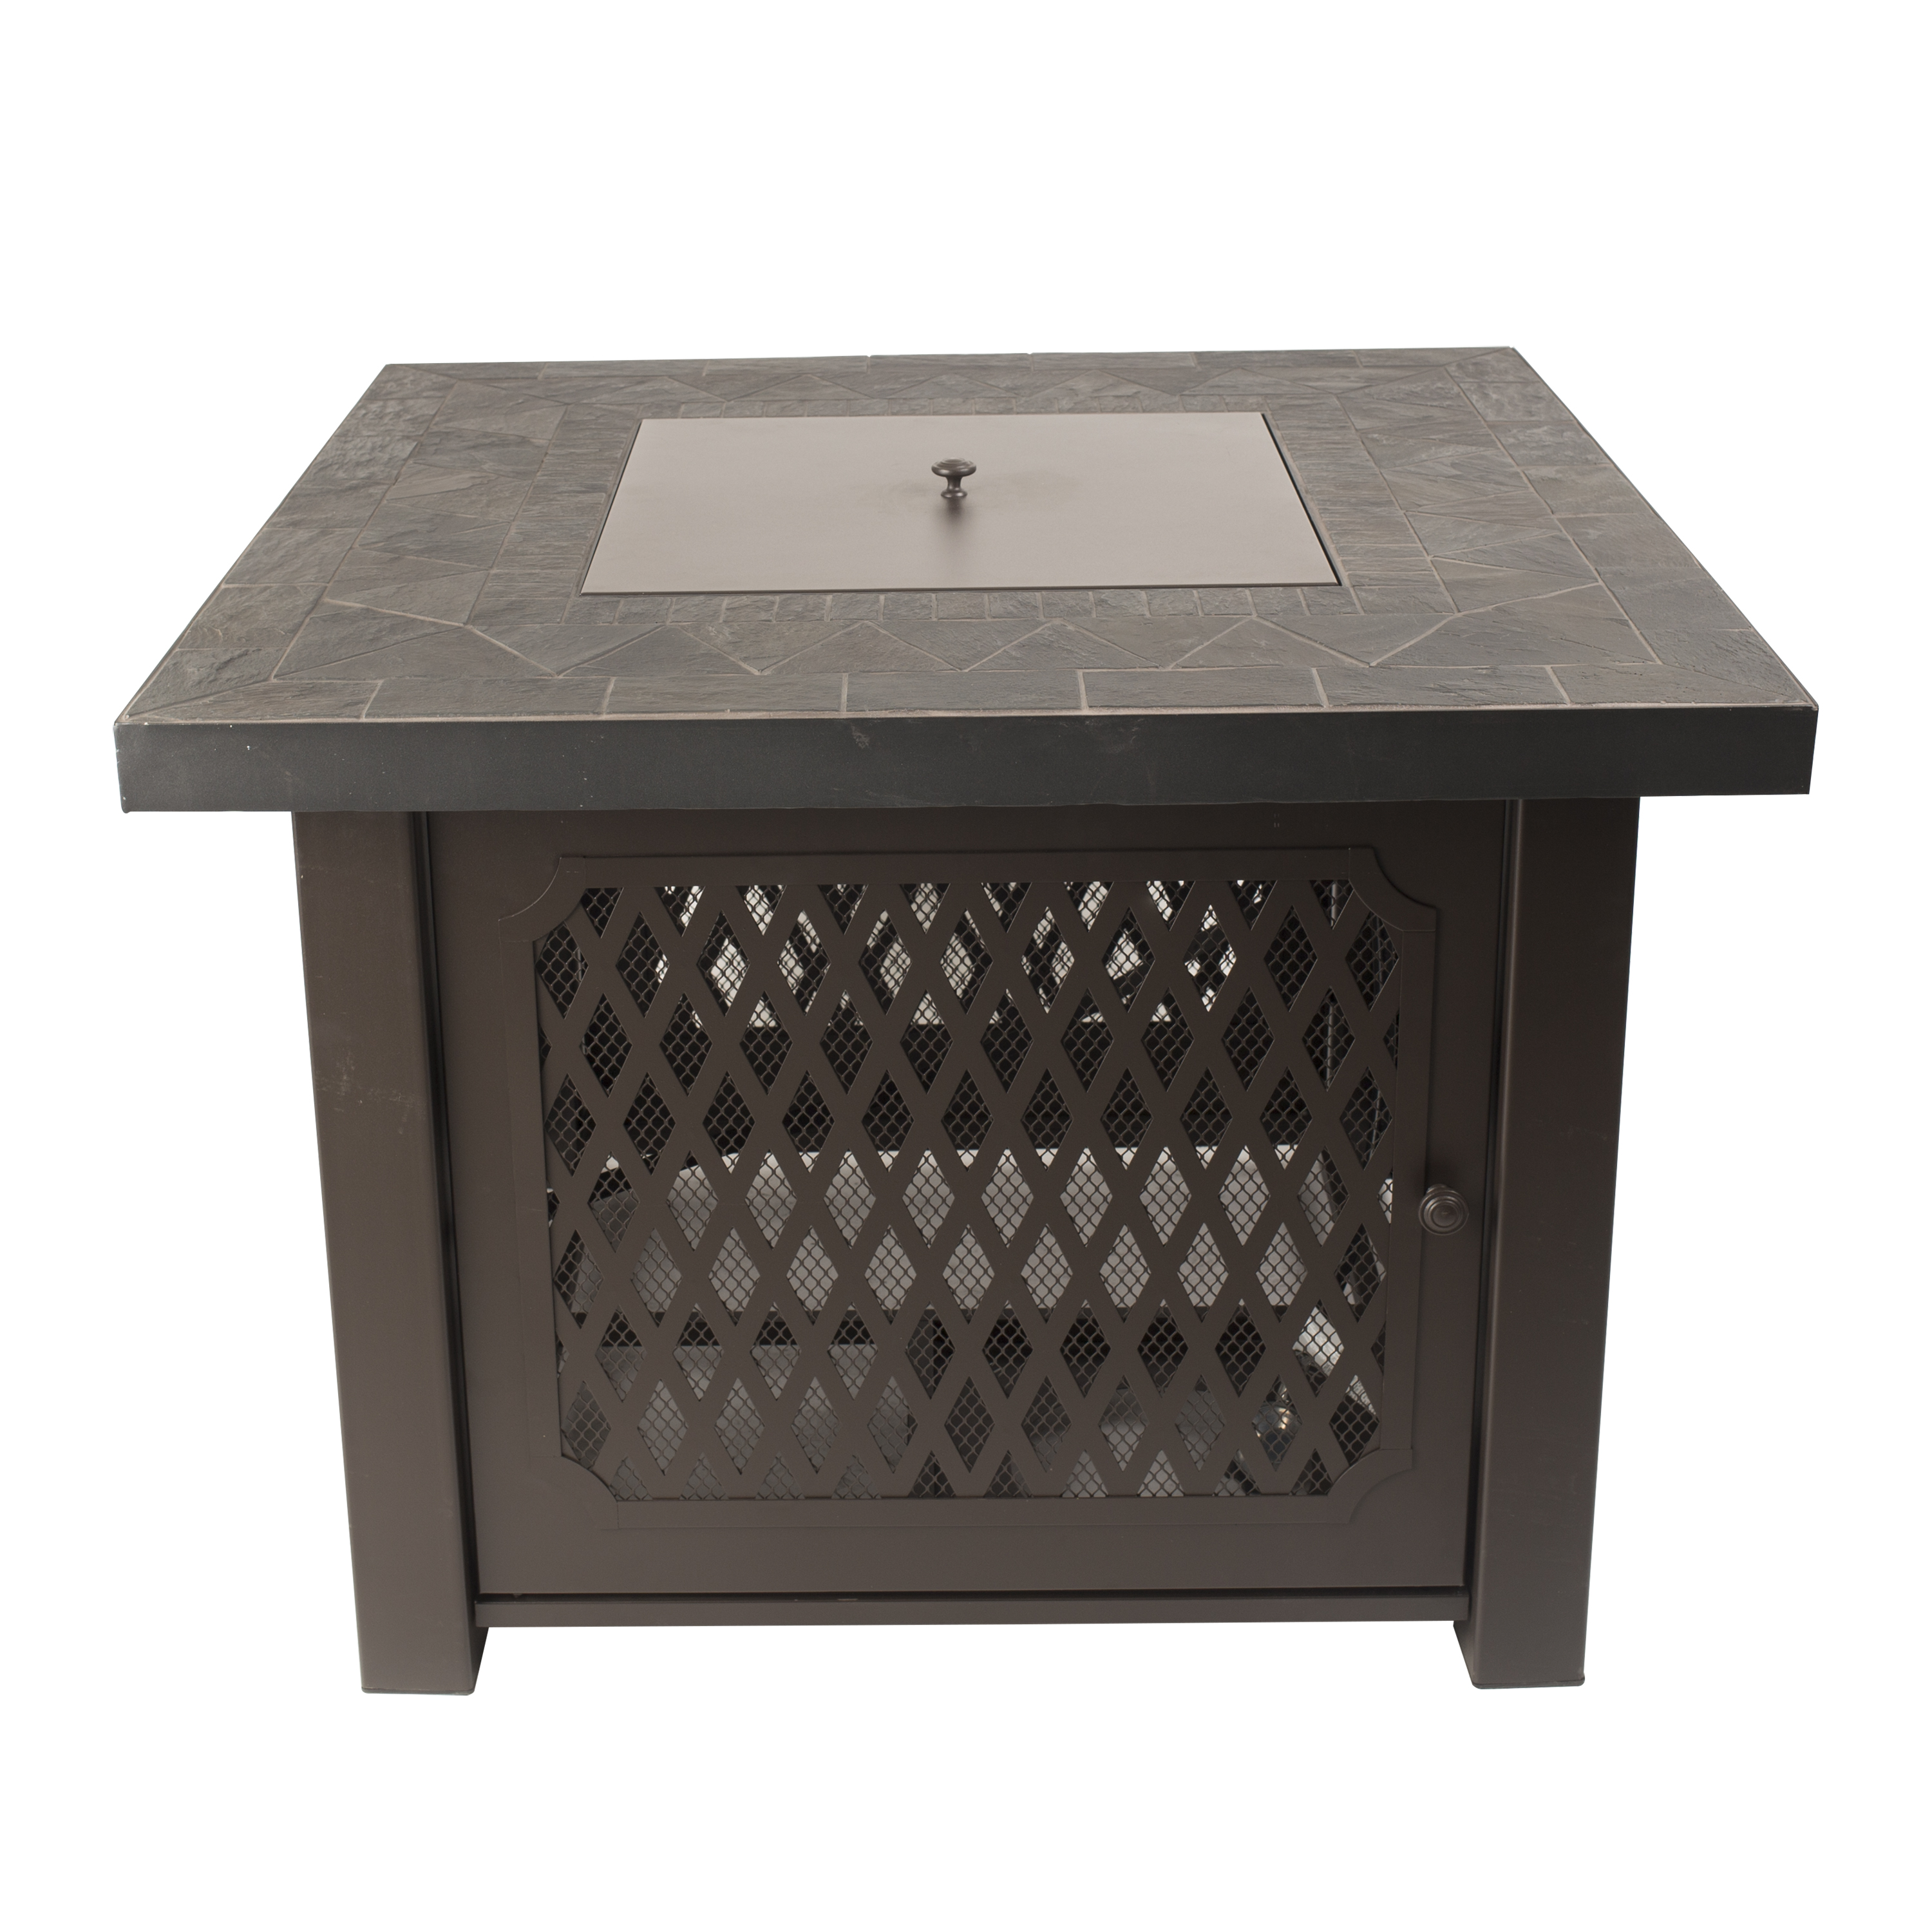 Pleasant Hearth OFG828T Walden Gas Firepit Table by GHP Group, Inc.